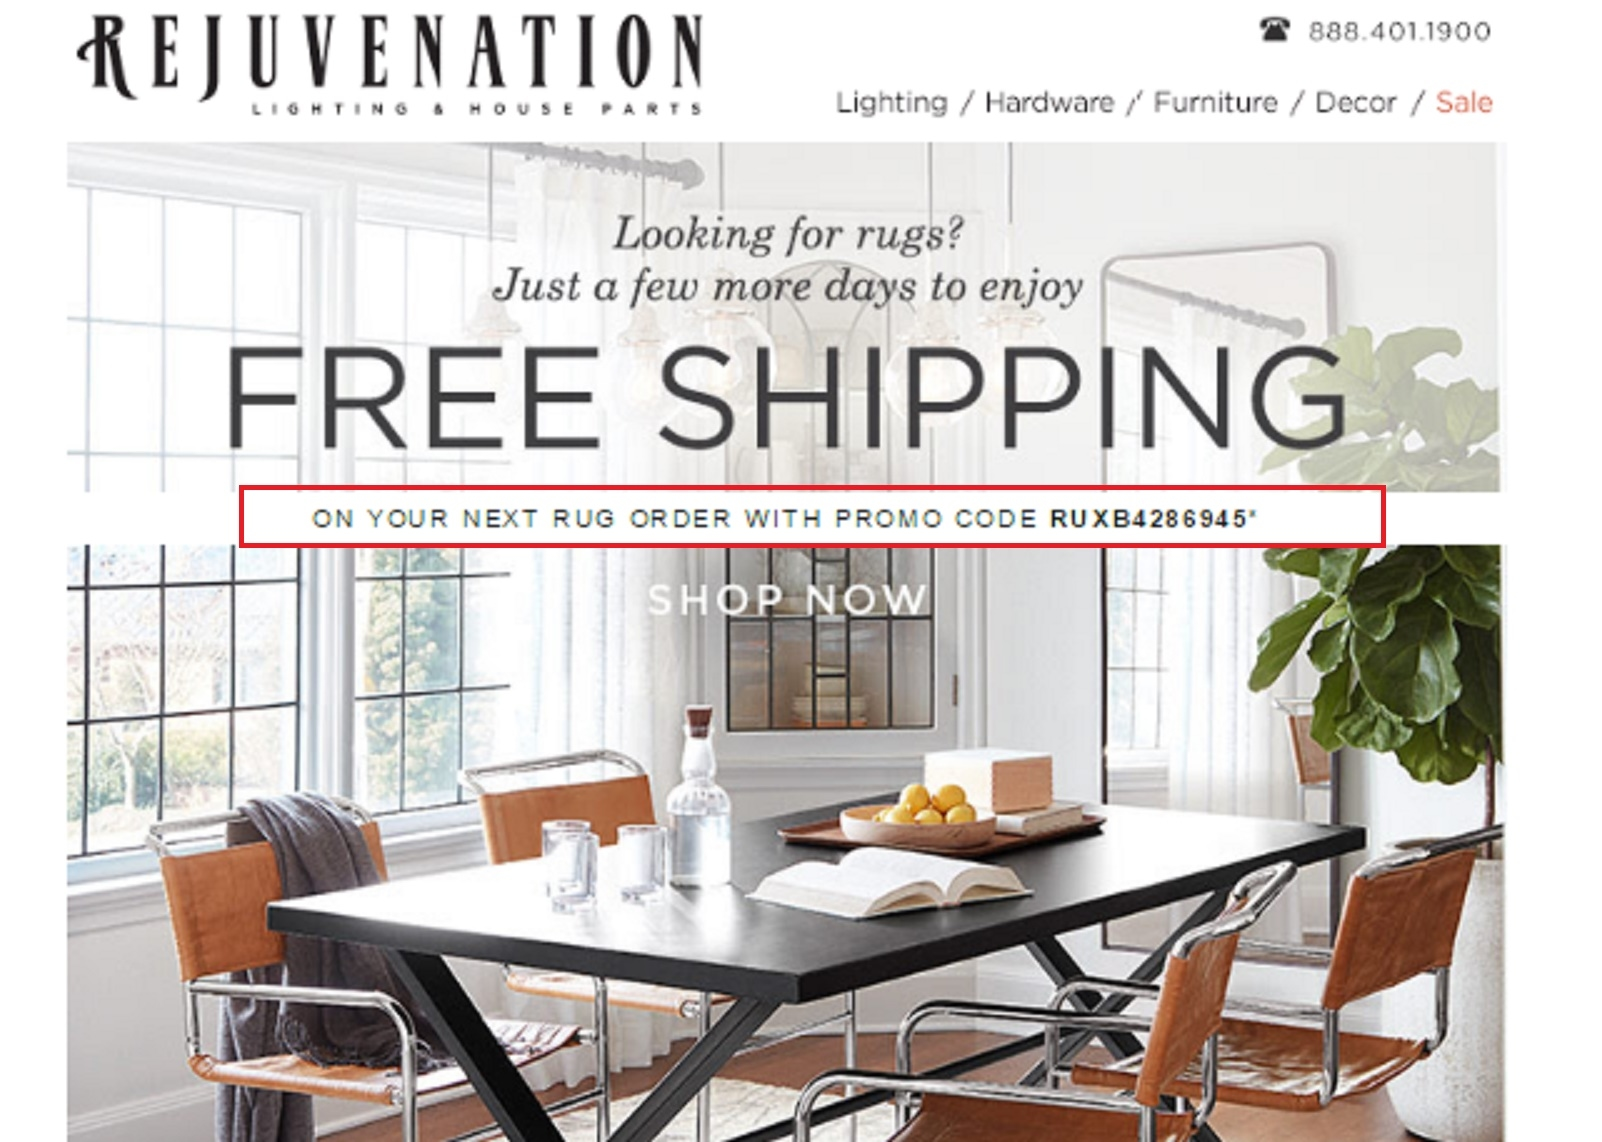 Shop at Rejuvenation until 03 December and get Up to 25% Off when you Buy More + Free Shipping using the code.